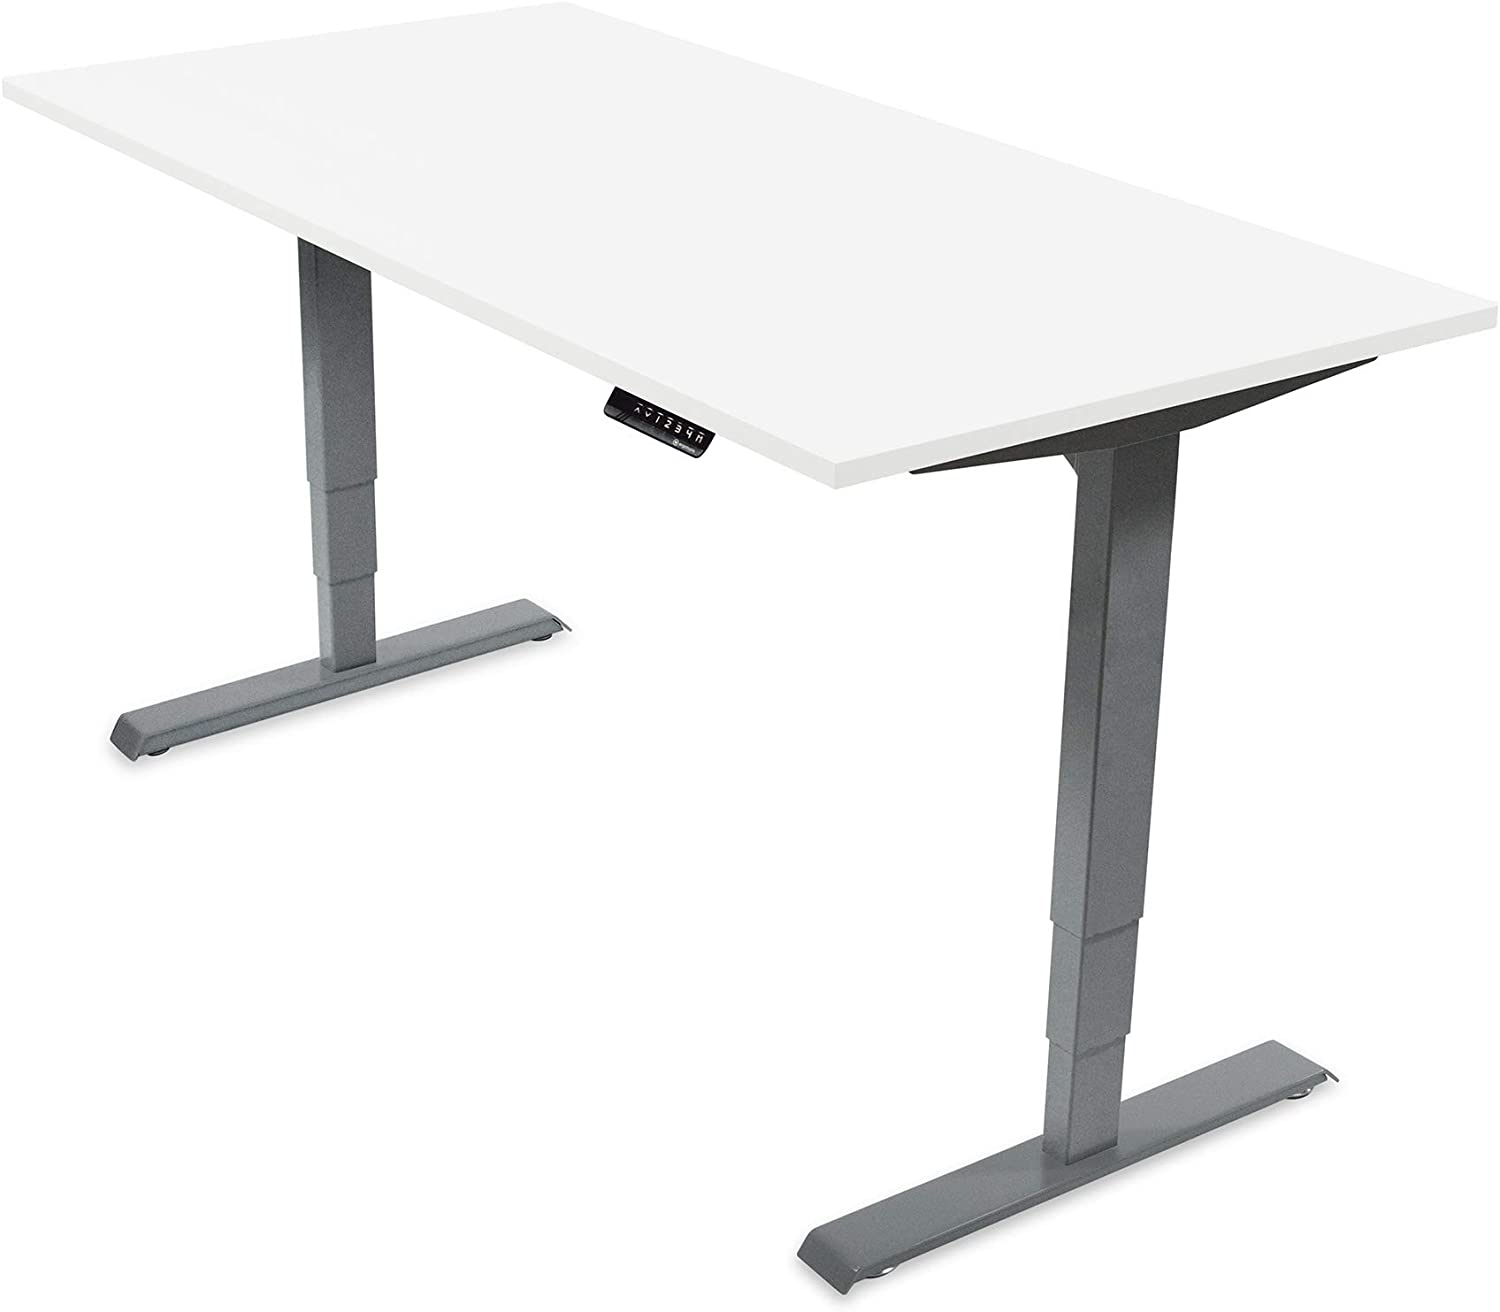 Ergotopia® Electric height adjustable Desk, Ergonomic Sit and Stand Desk with Memory Function, Prevents Back Pain & Boosts Productivity